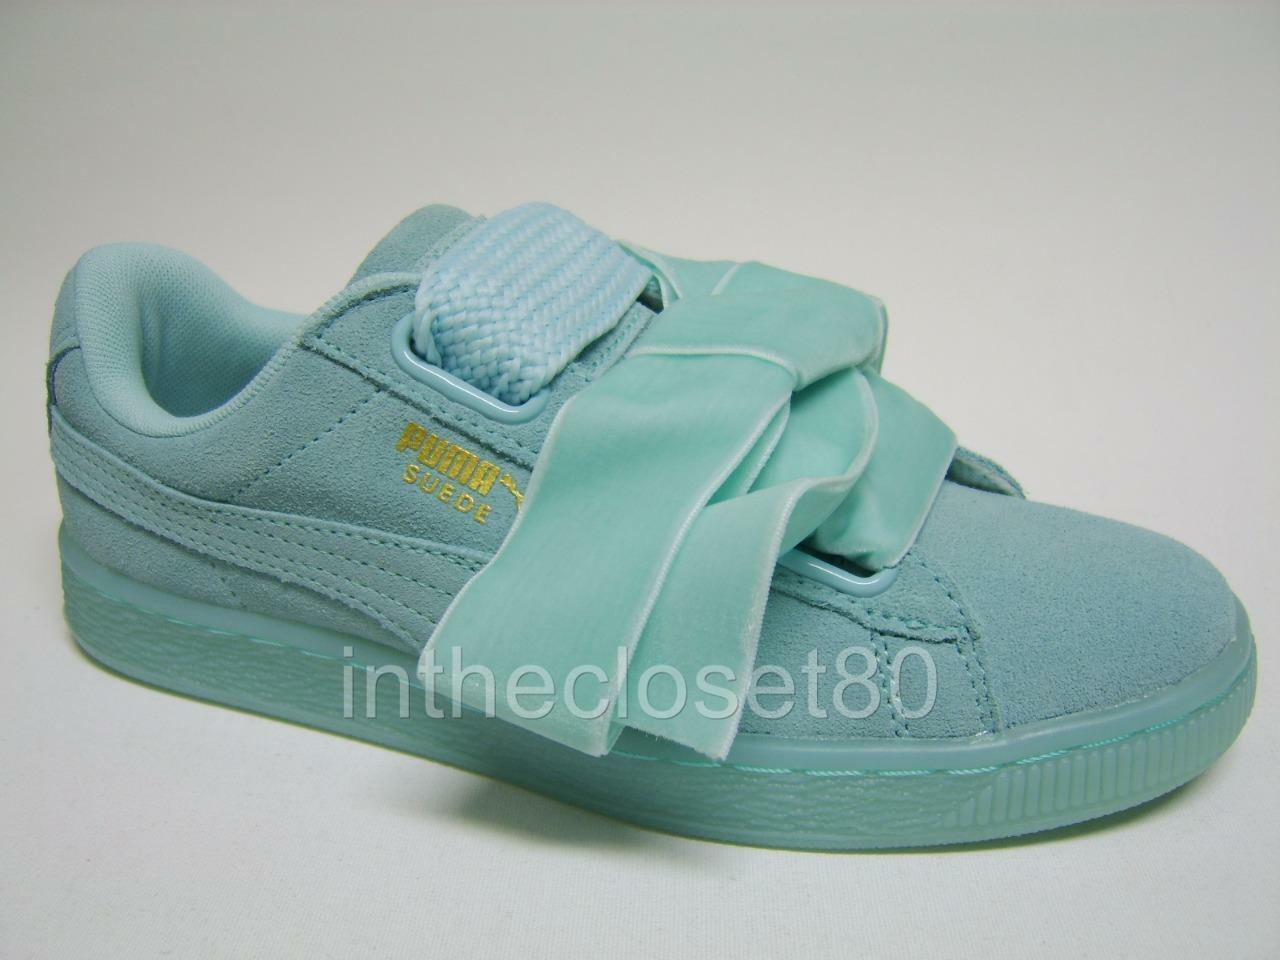 Puma Basket Heart Suede Leather Aruba Blau Turquoise damen Trainers 363229 01